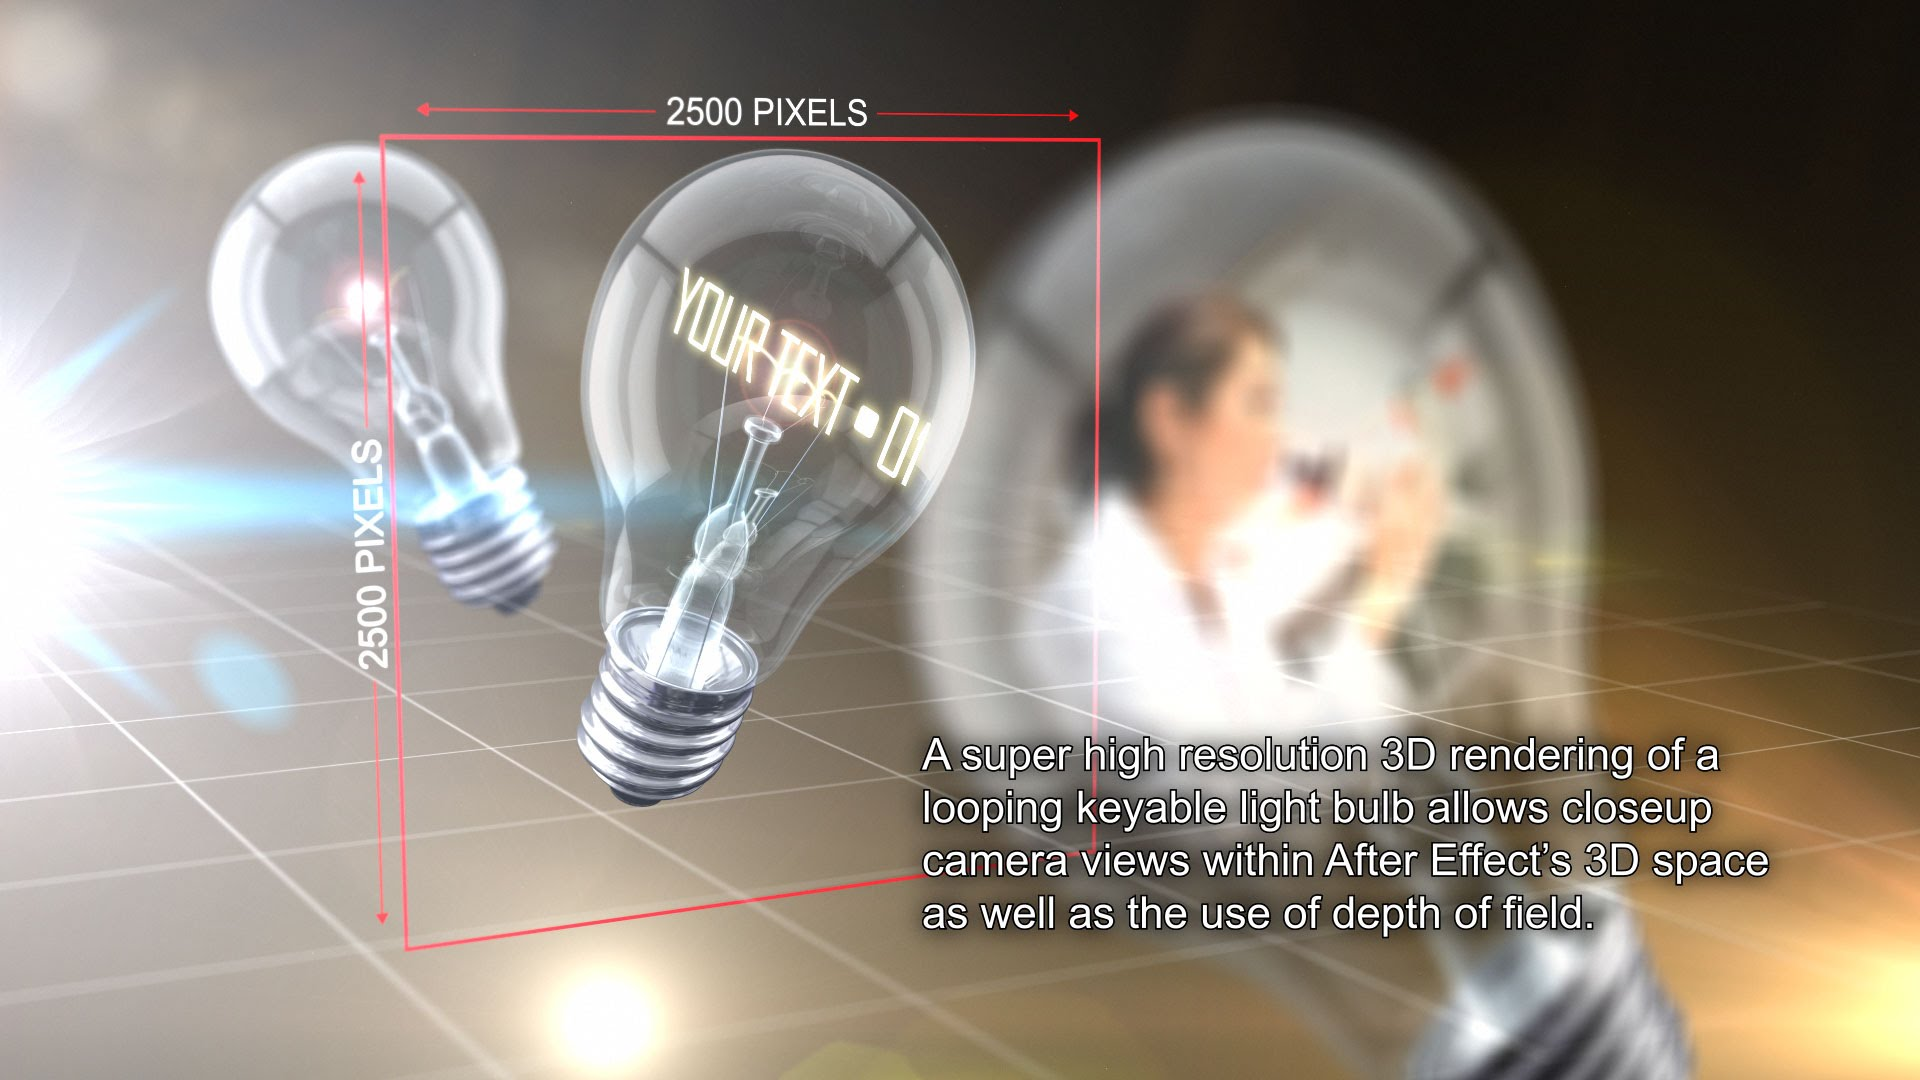 Illuminating Innovation Light Bulb After Effects Template - 4